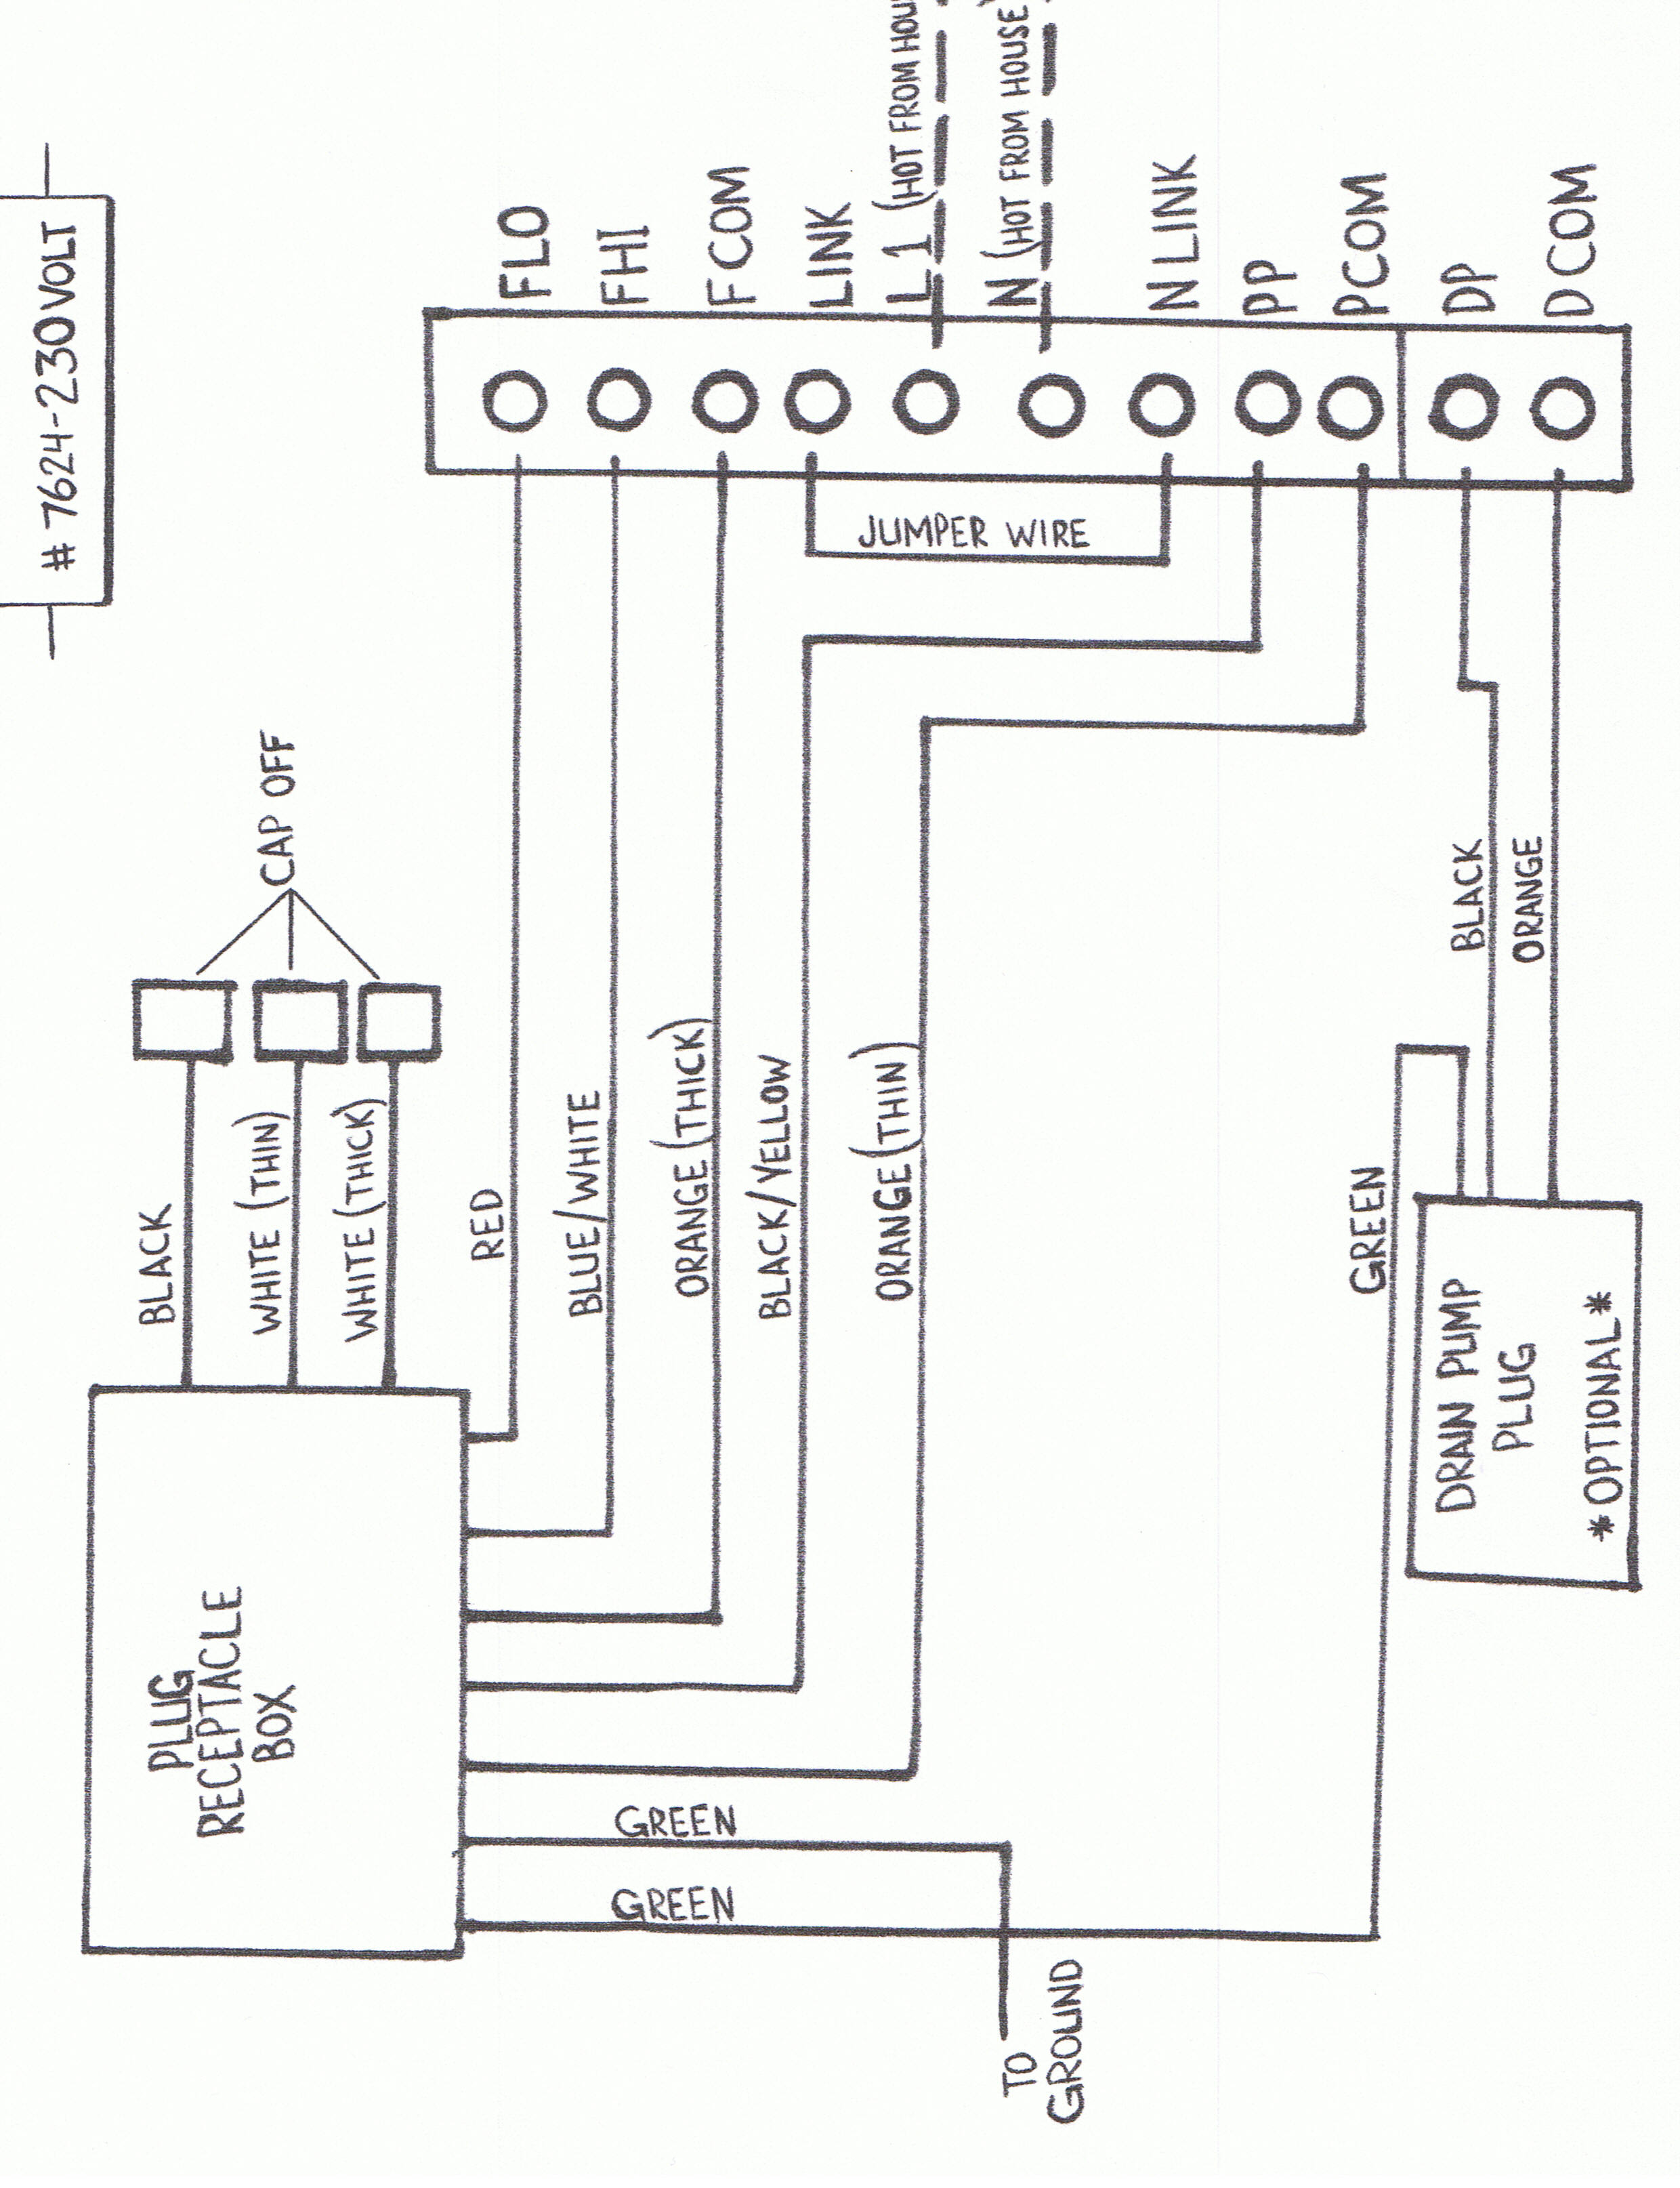 Aspen Mini White Condensate Pump Wiring Diagram